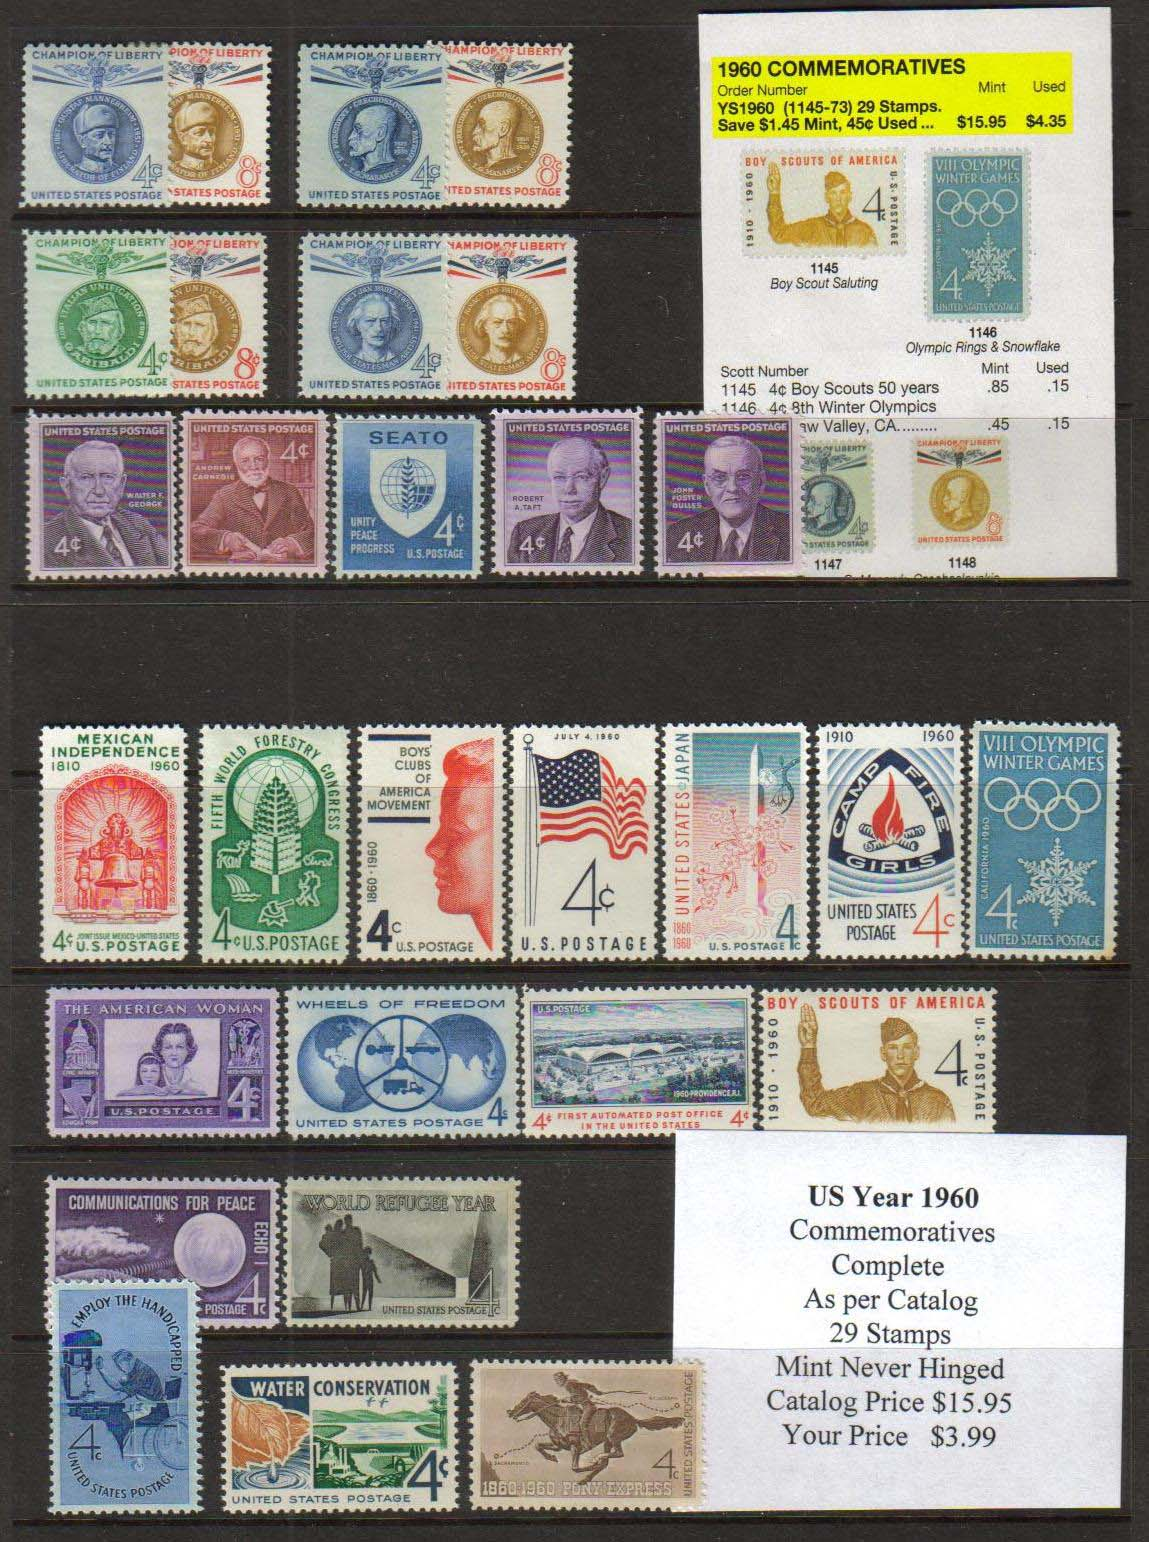 1960 COMMEMORATIVES, 29 STAMPS